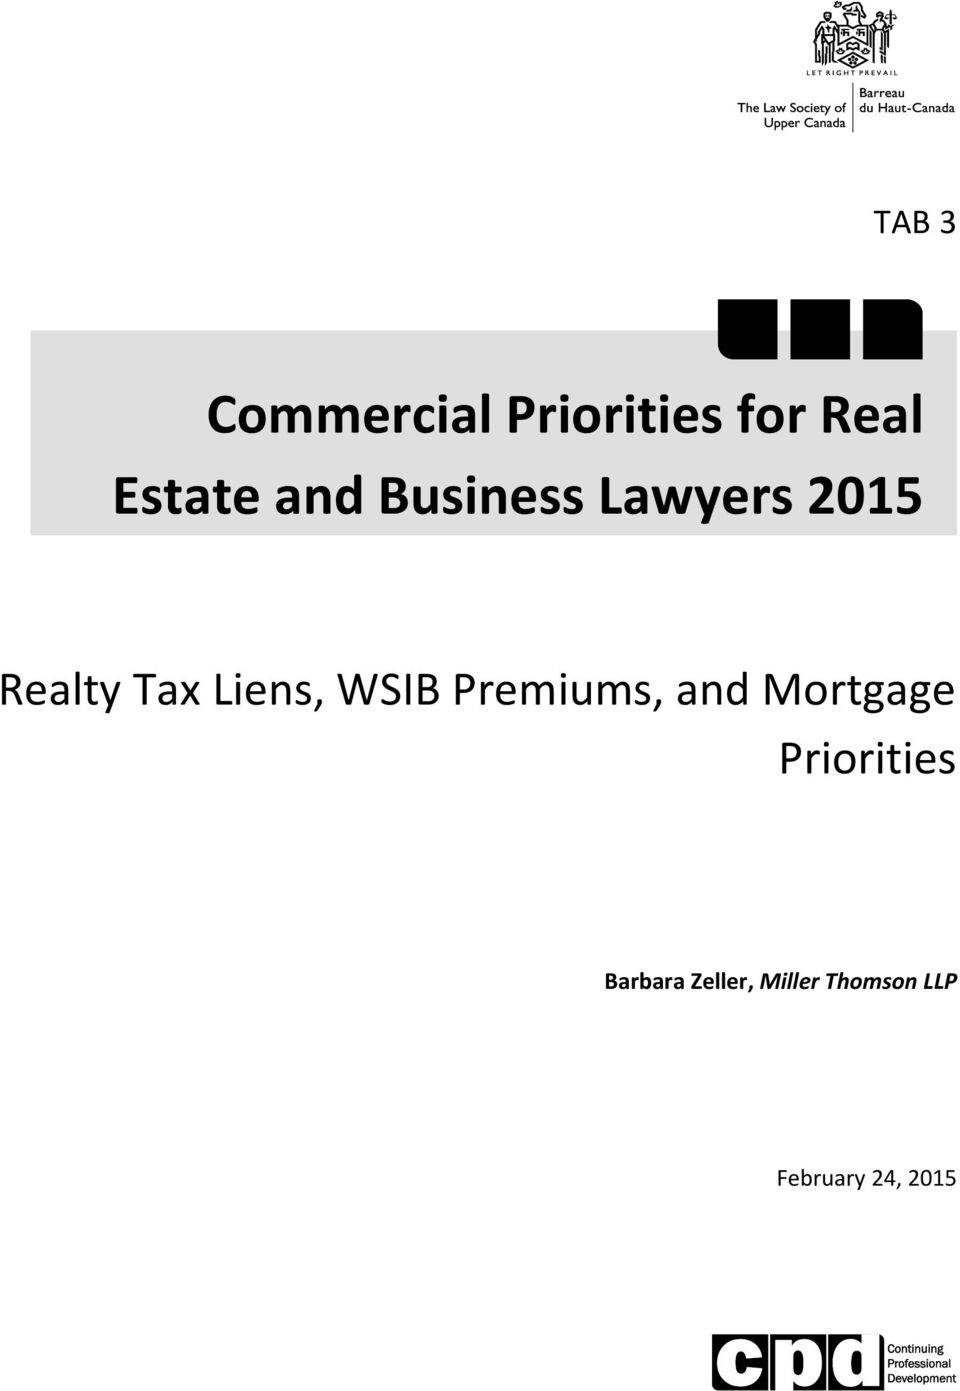 WSIB Premiums, and Mortgage Priorities